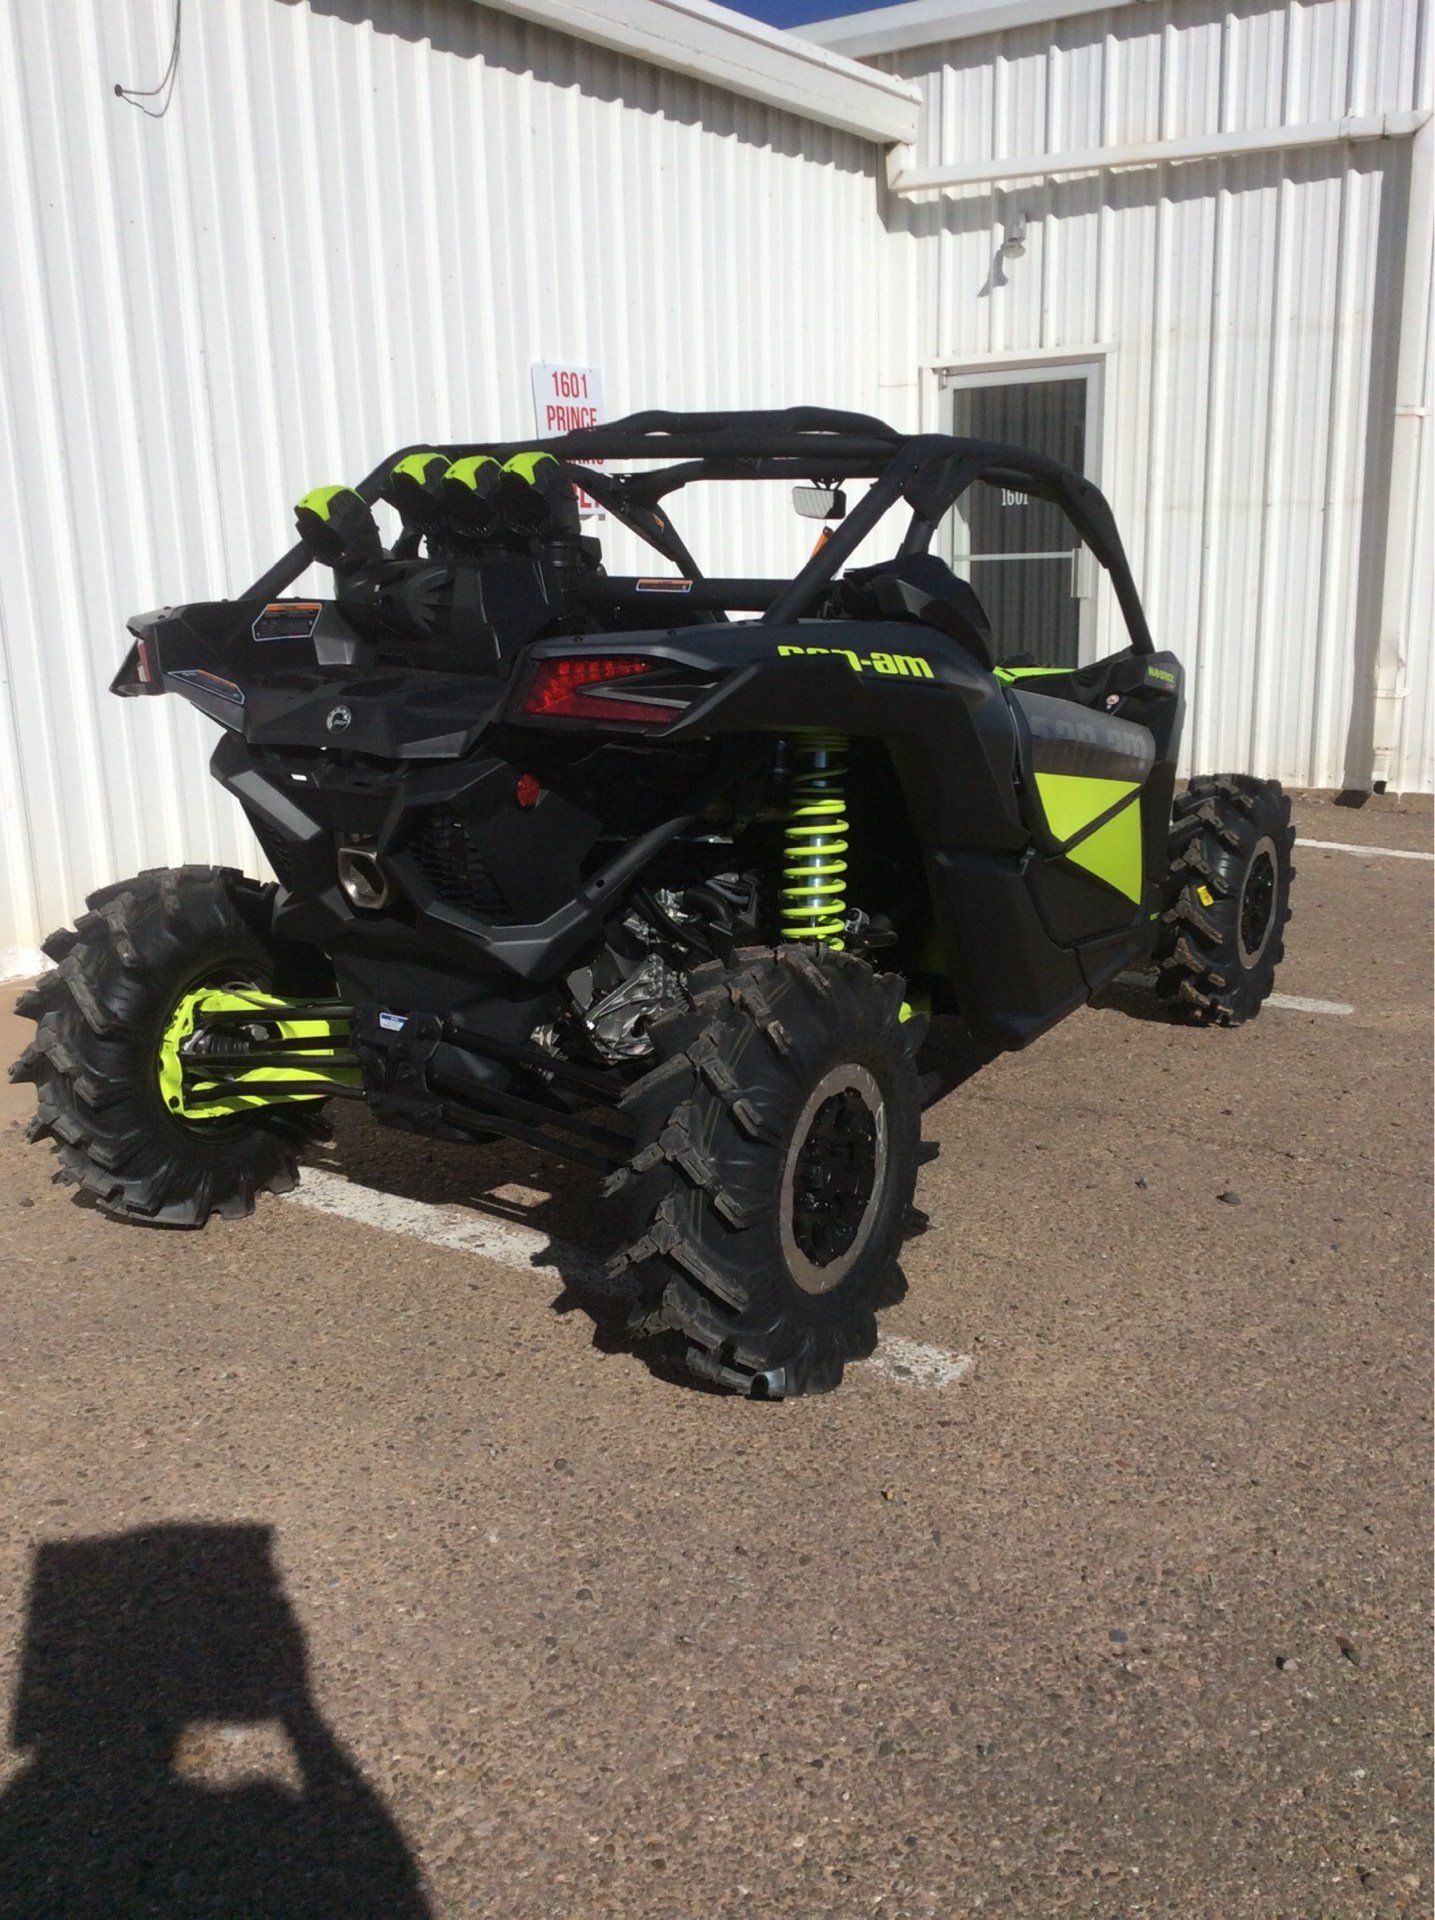 2020 Can-Am Maverick X3 X MR Turbo in Clovis, New Mexico - Photo 4